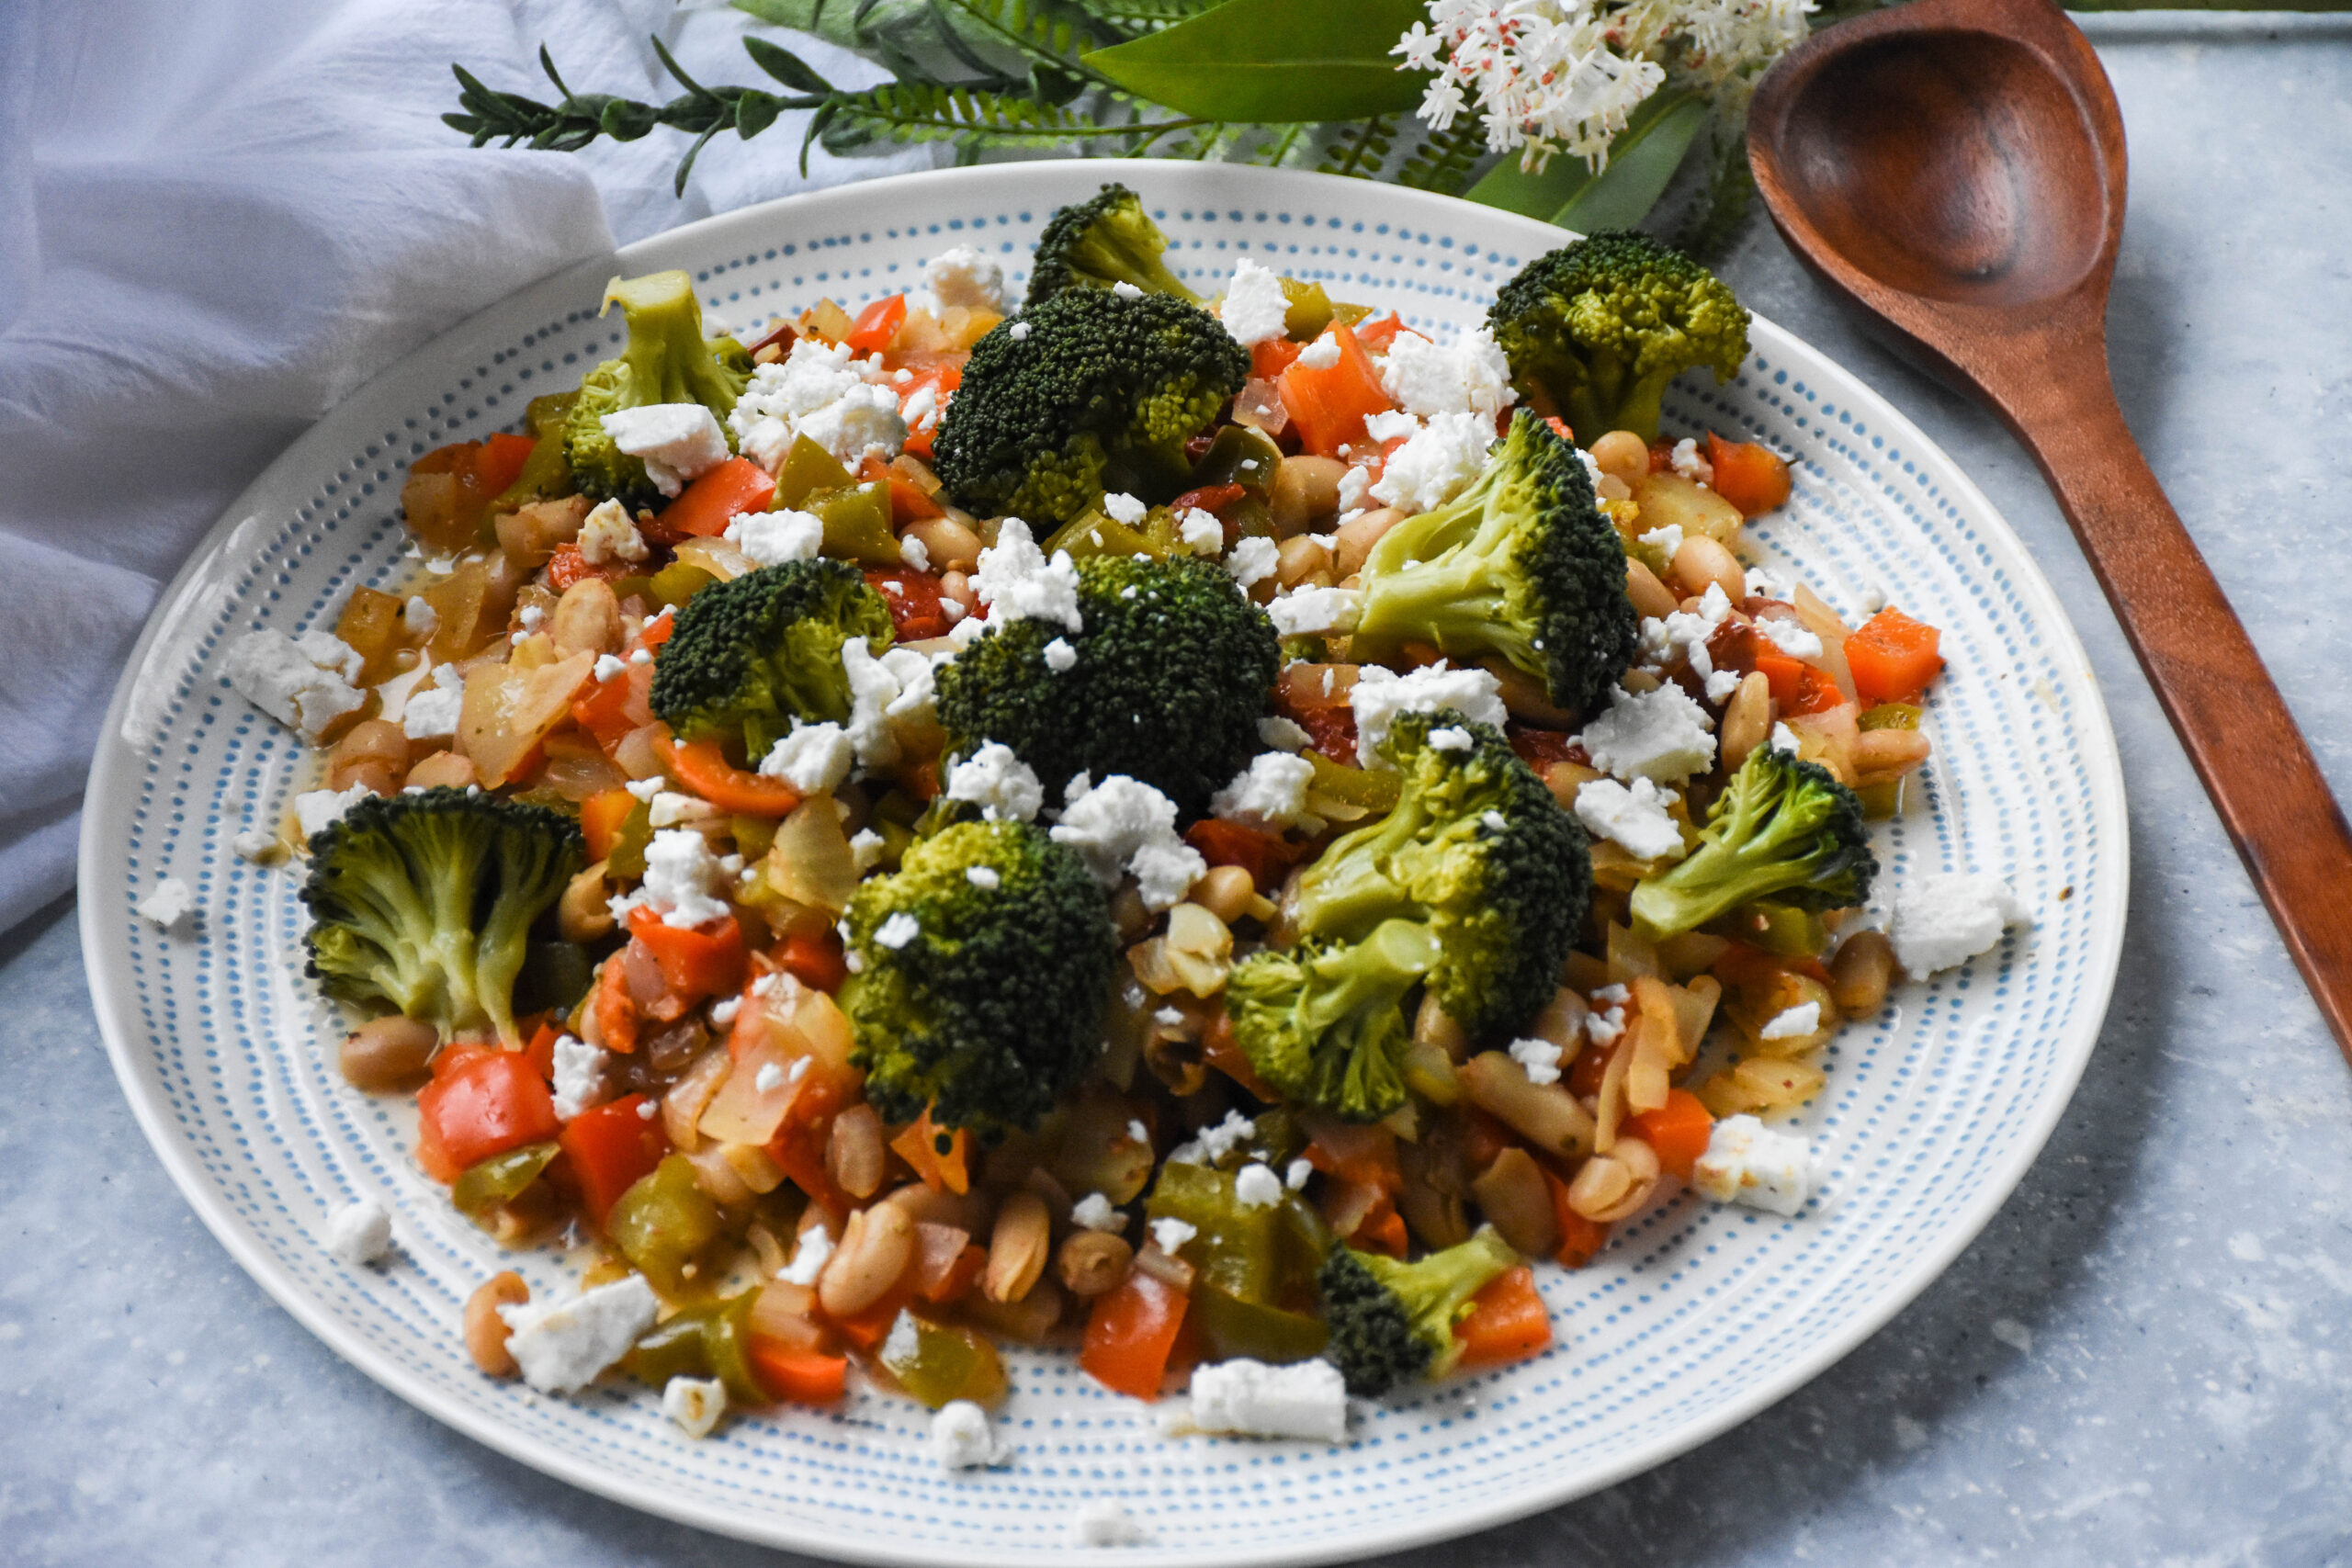 beans and vegetables served on a plate